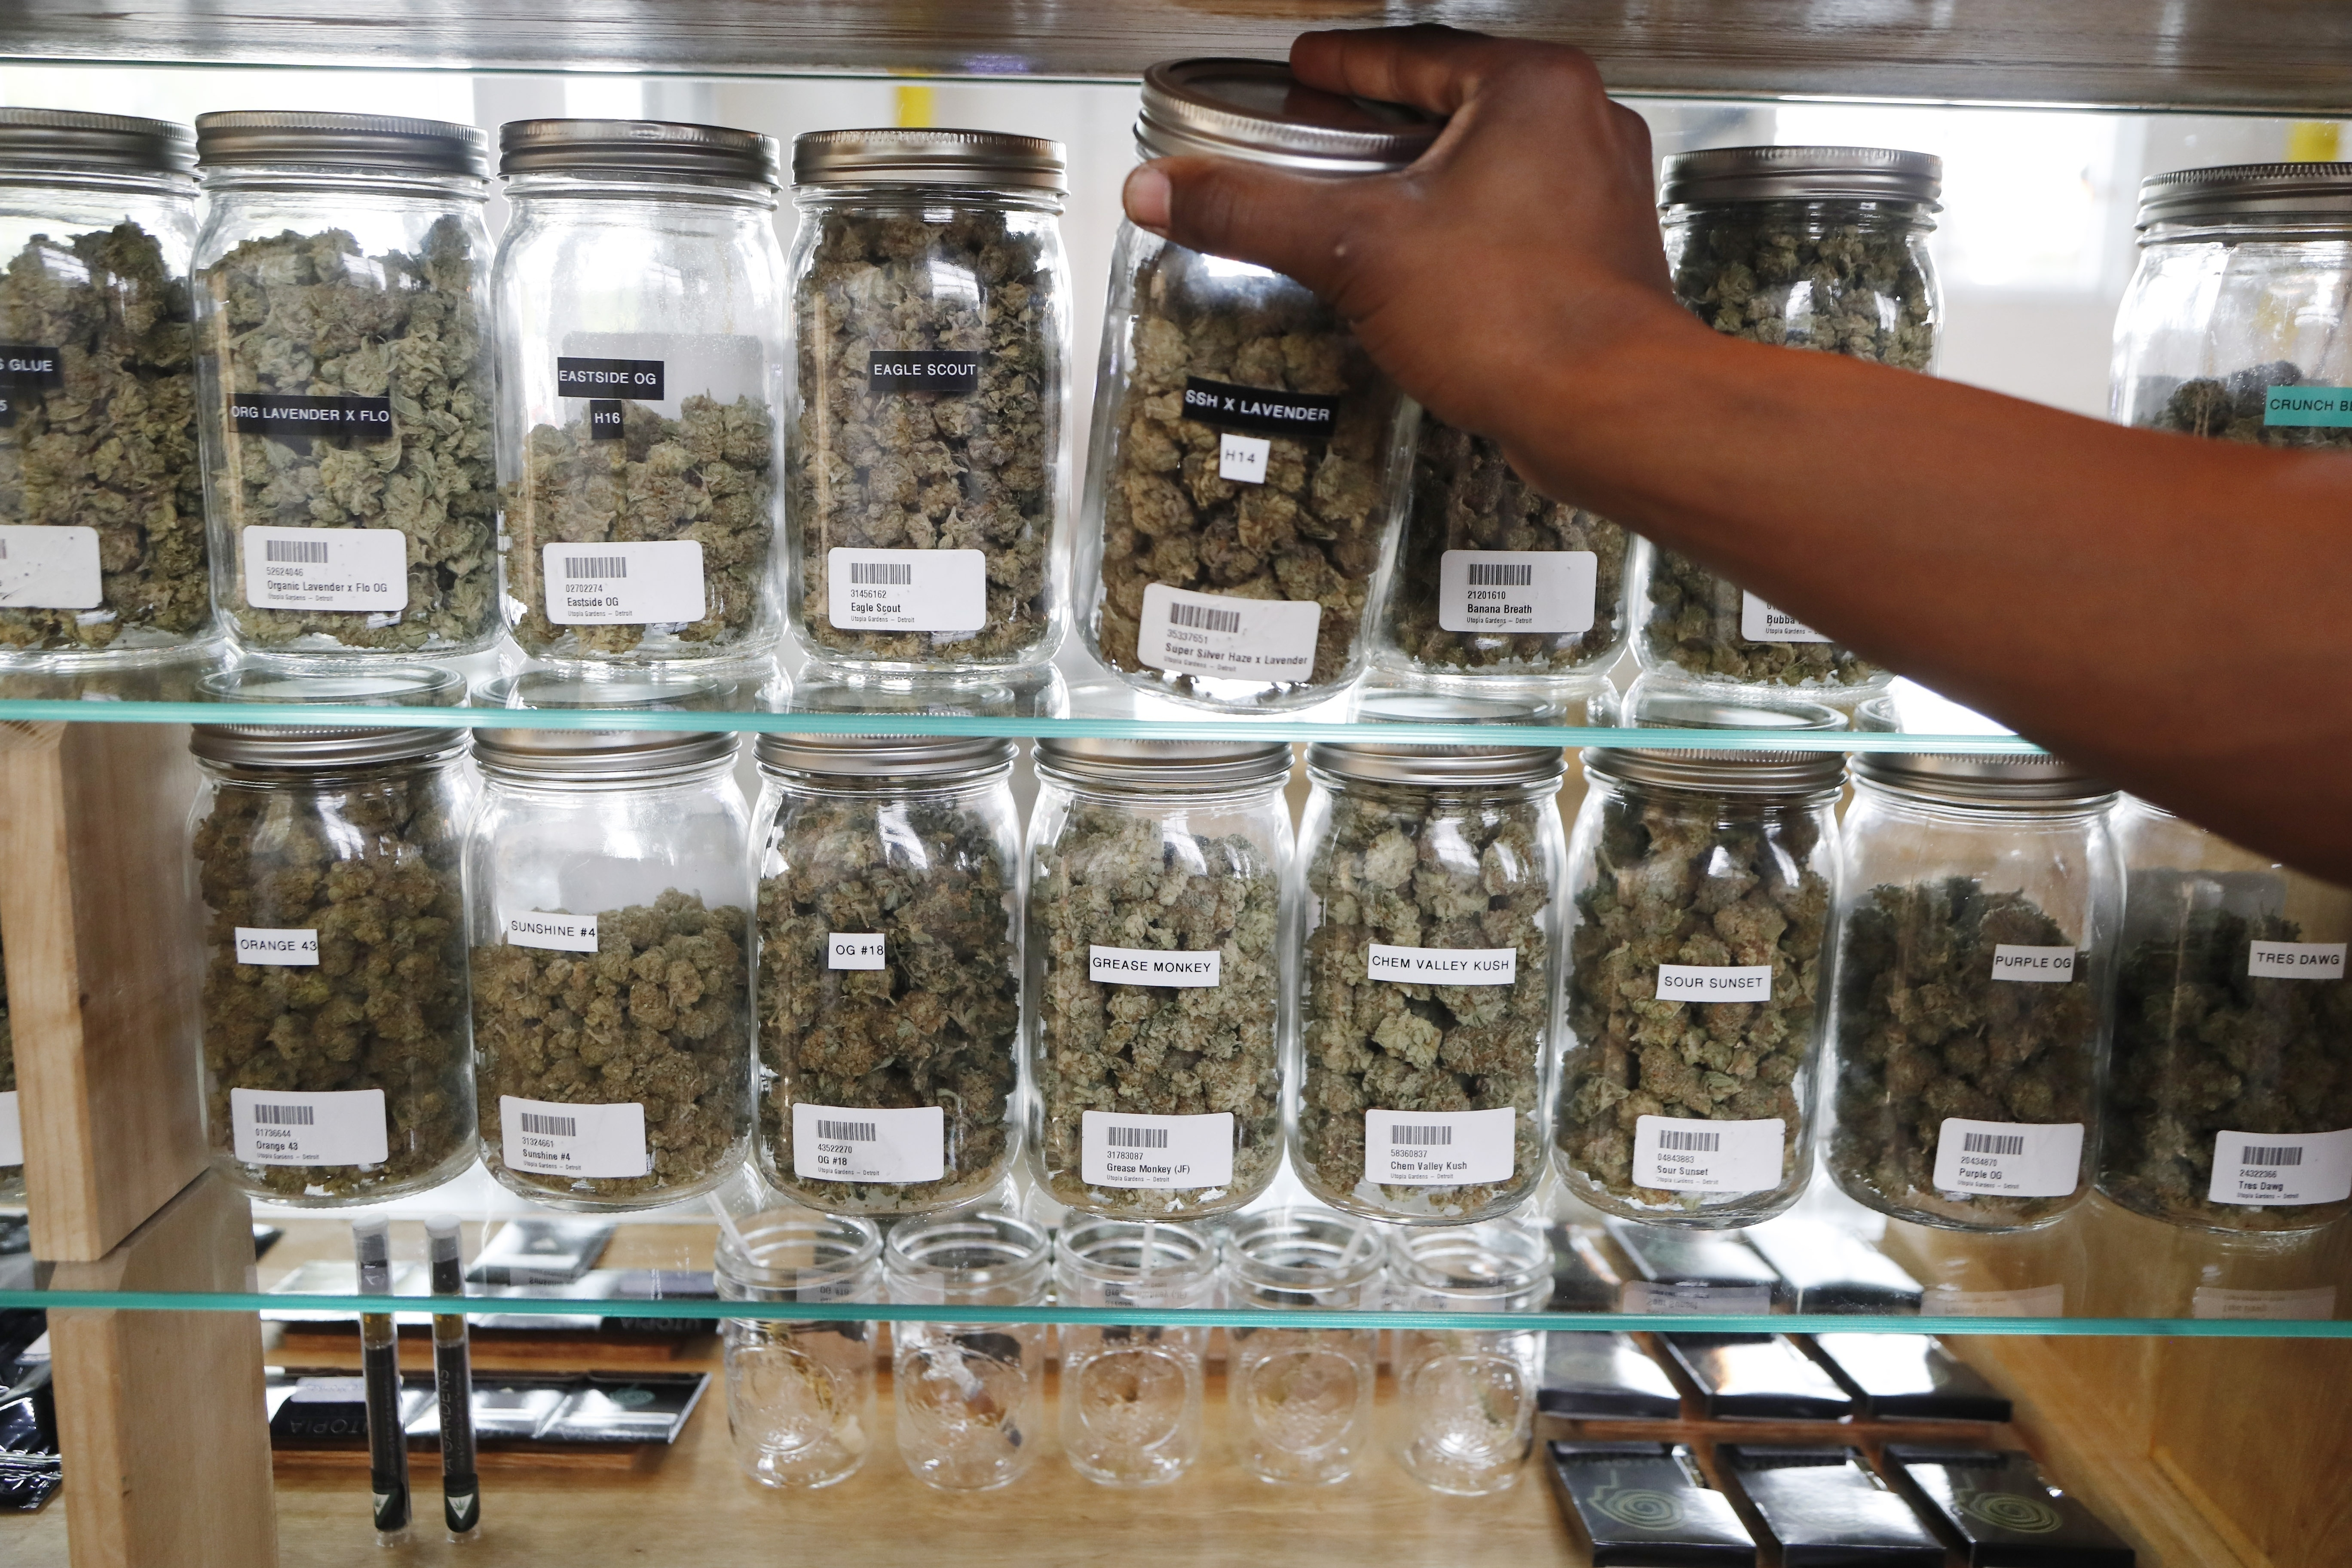 Final approval to begin sales remains elusive for marijuana